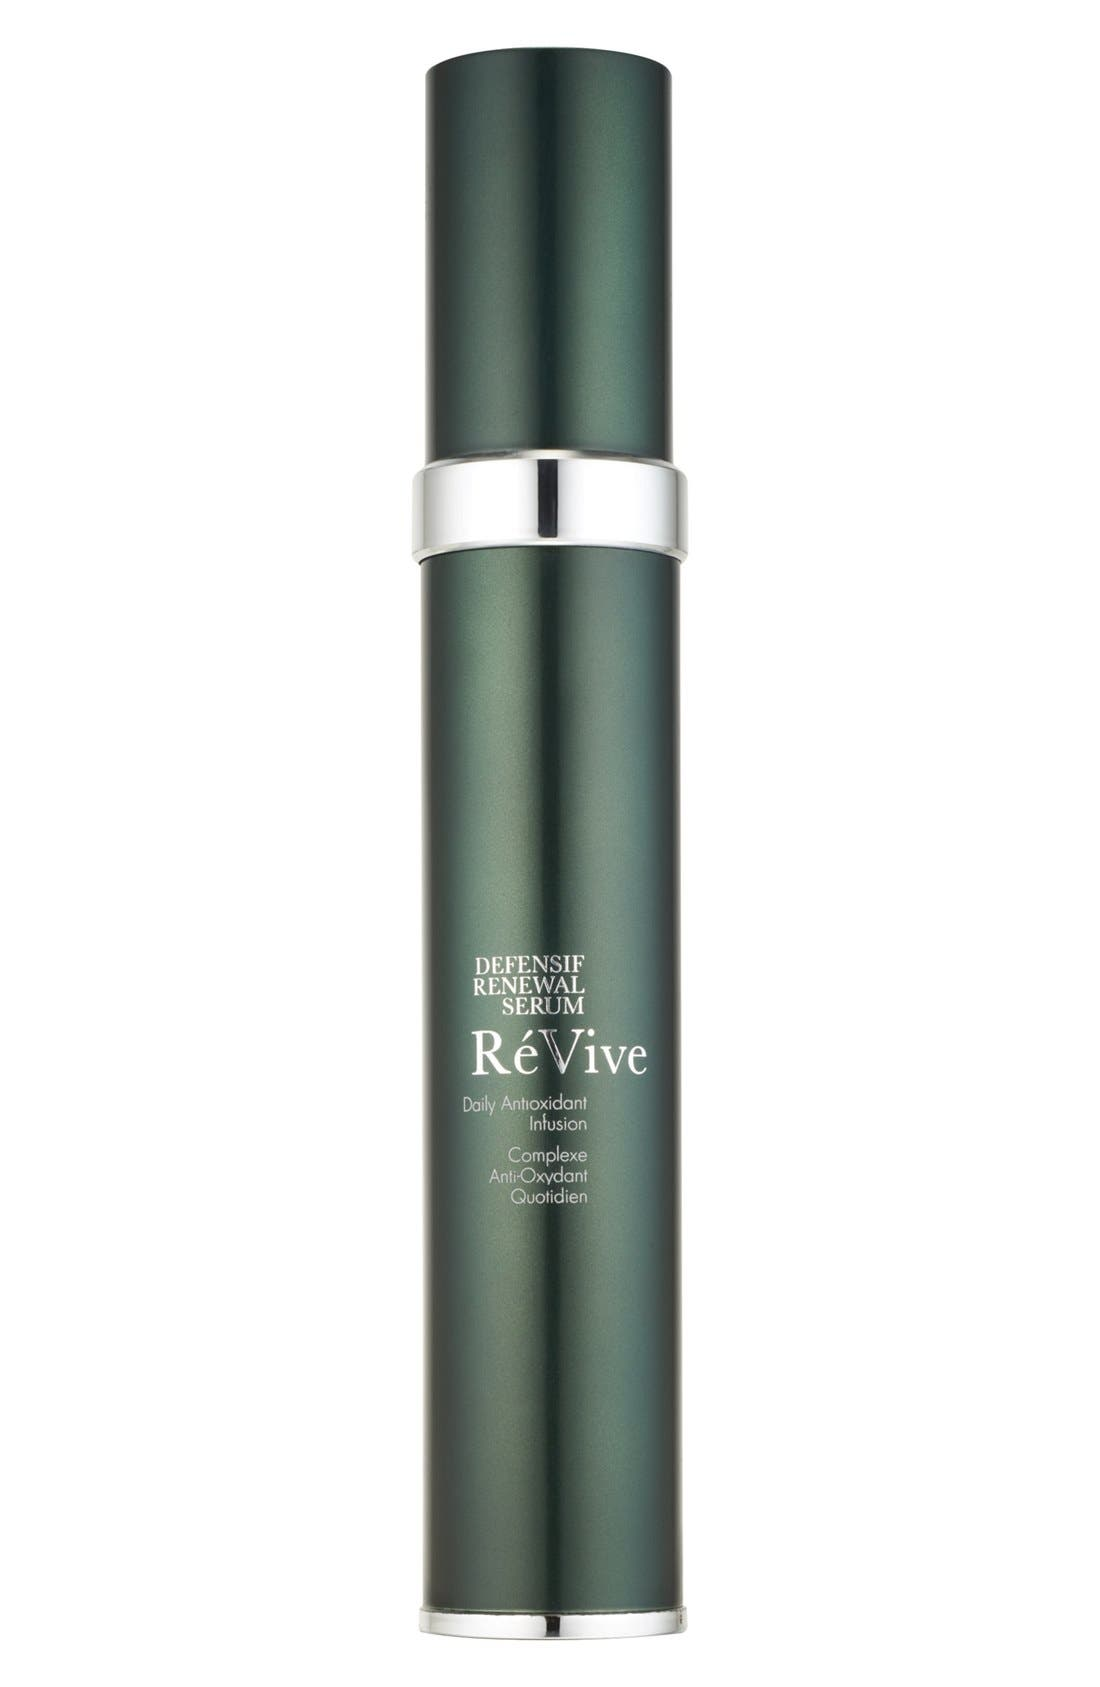 Defensif Renewal Serum,                             Main thumbnail 1, color,                             000